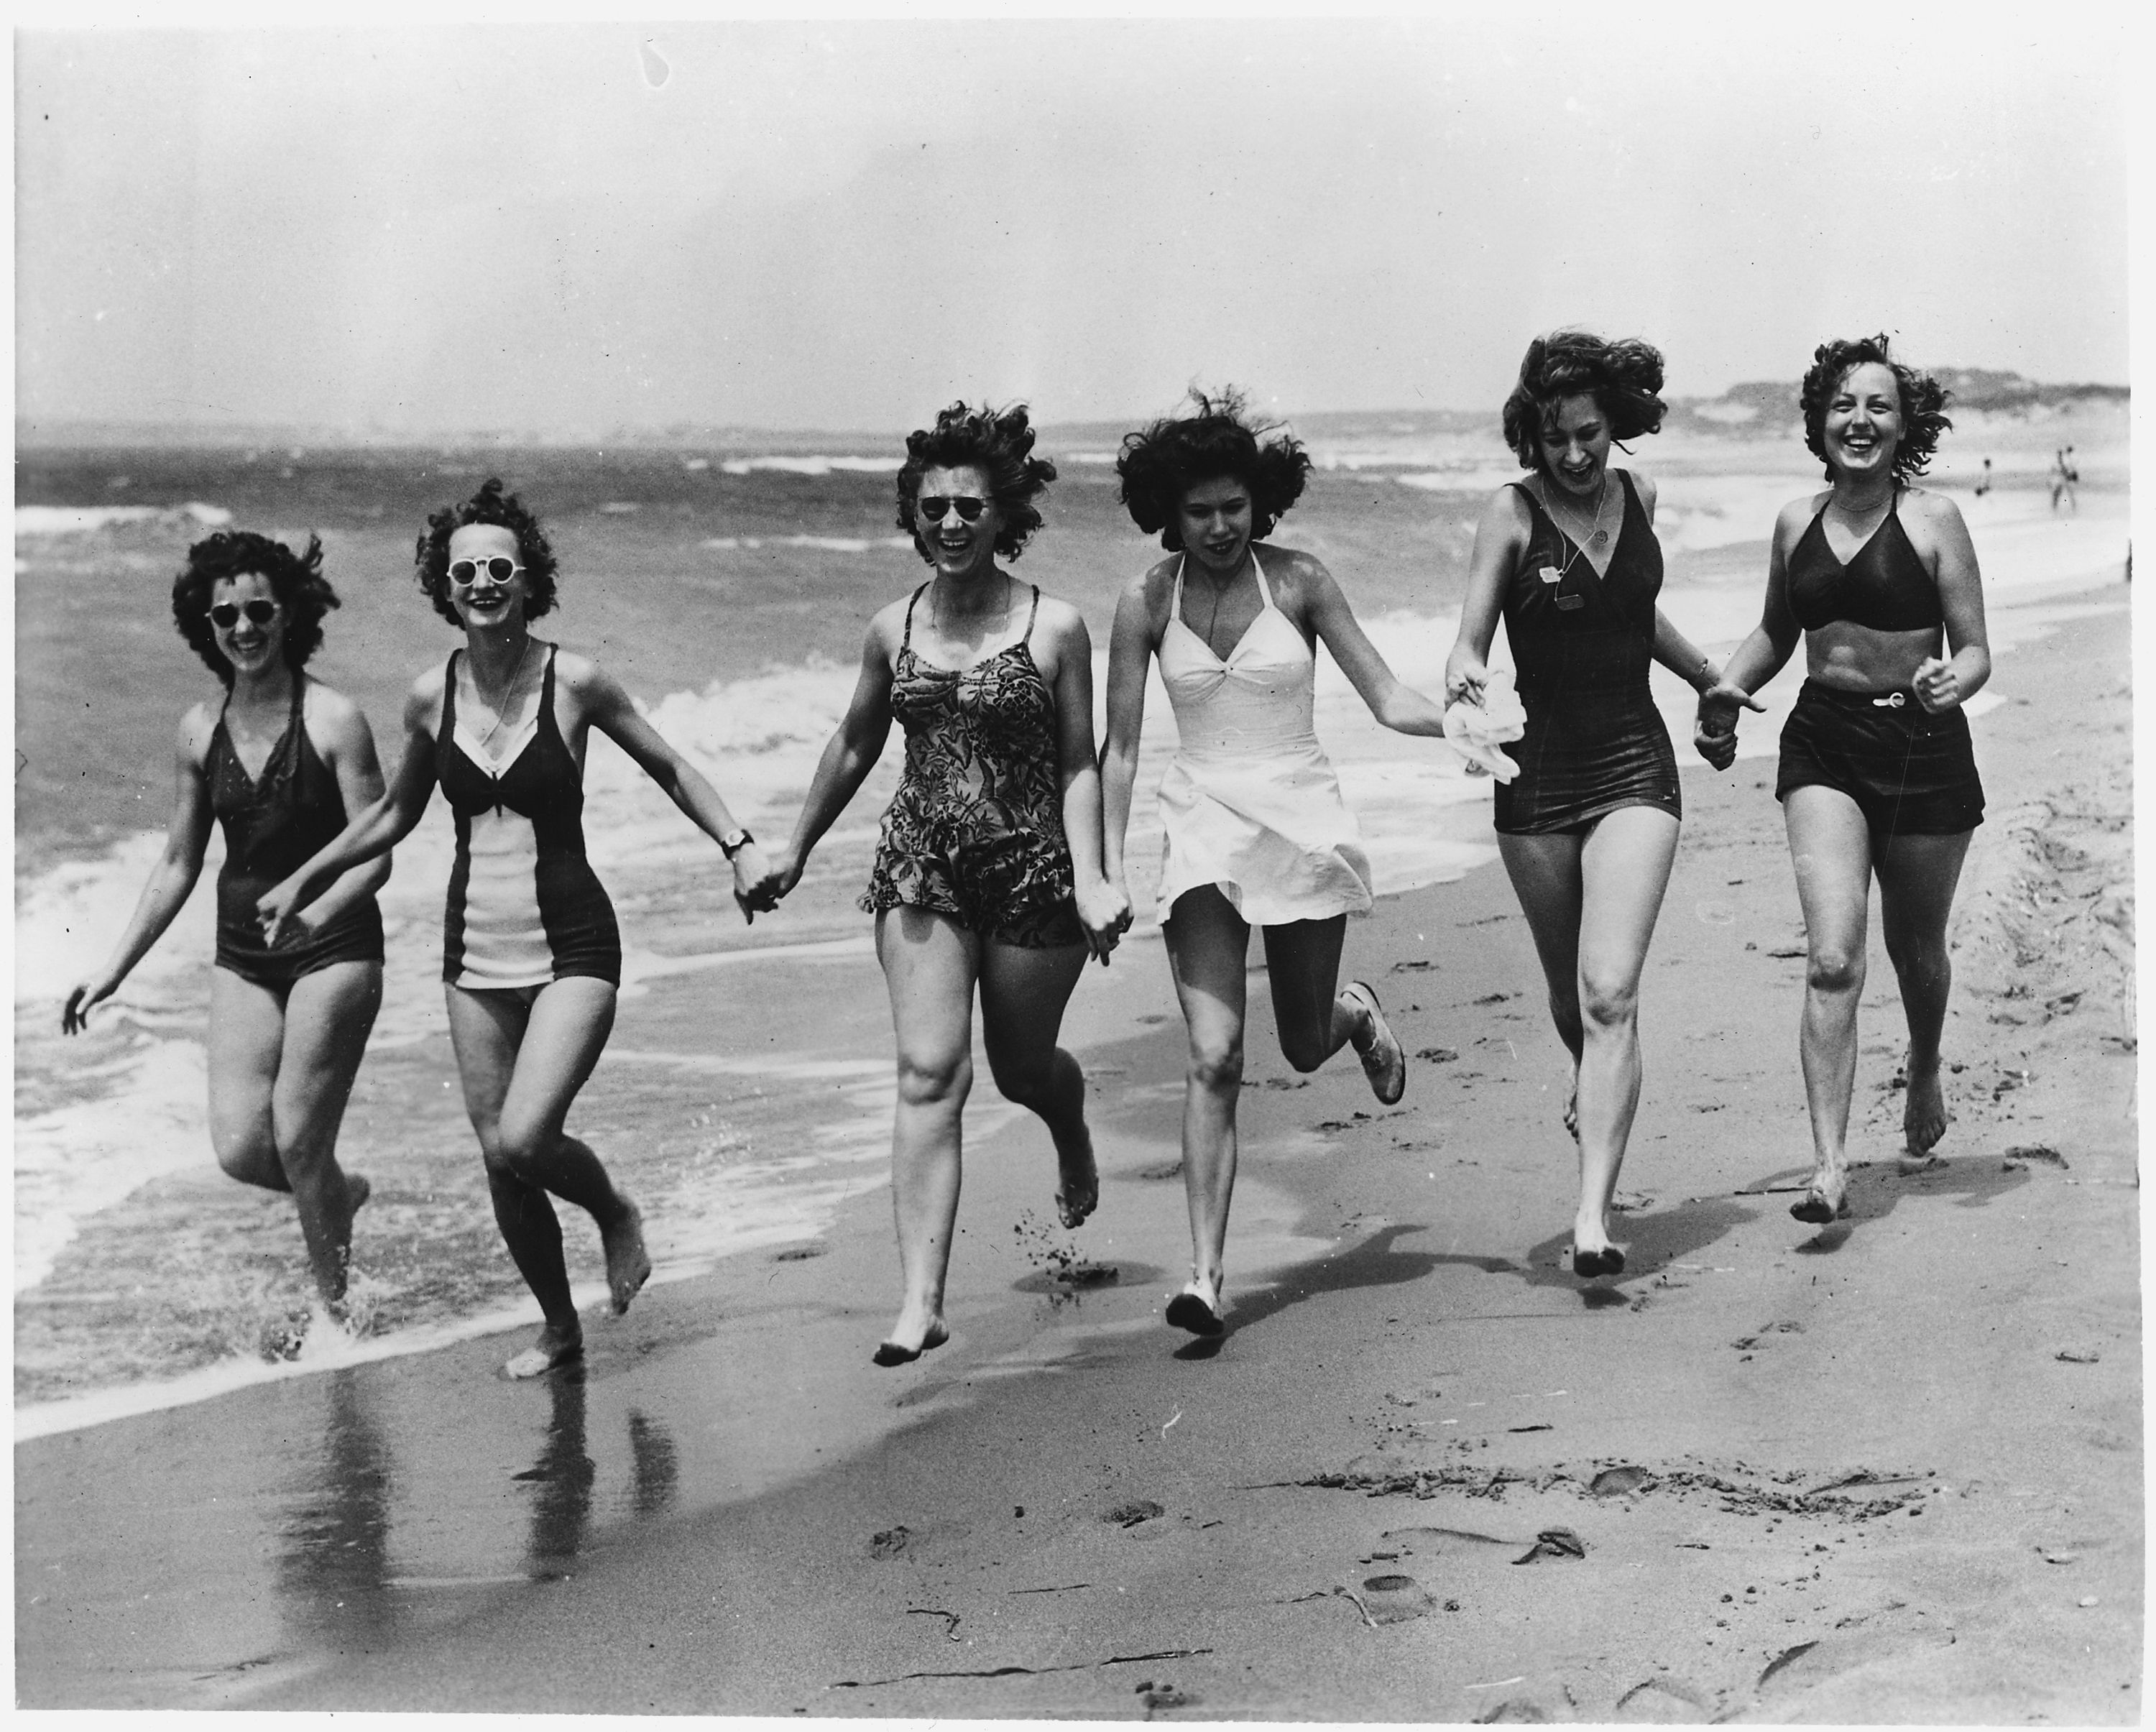 Women on the beach in the 50s